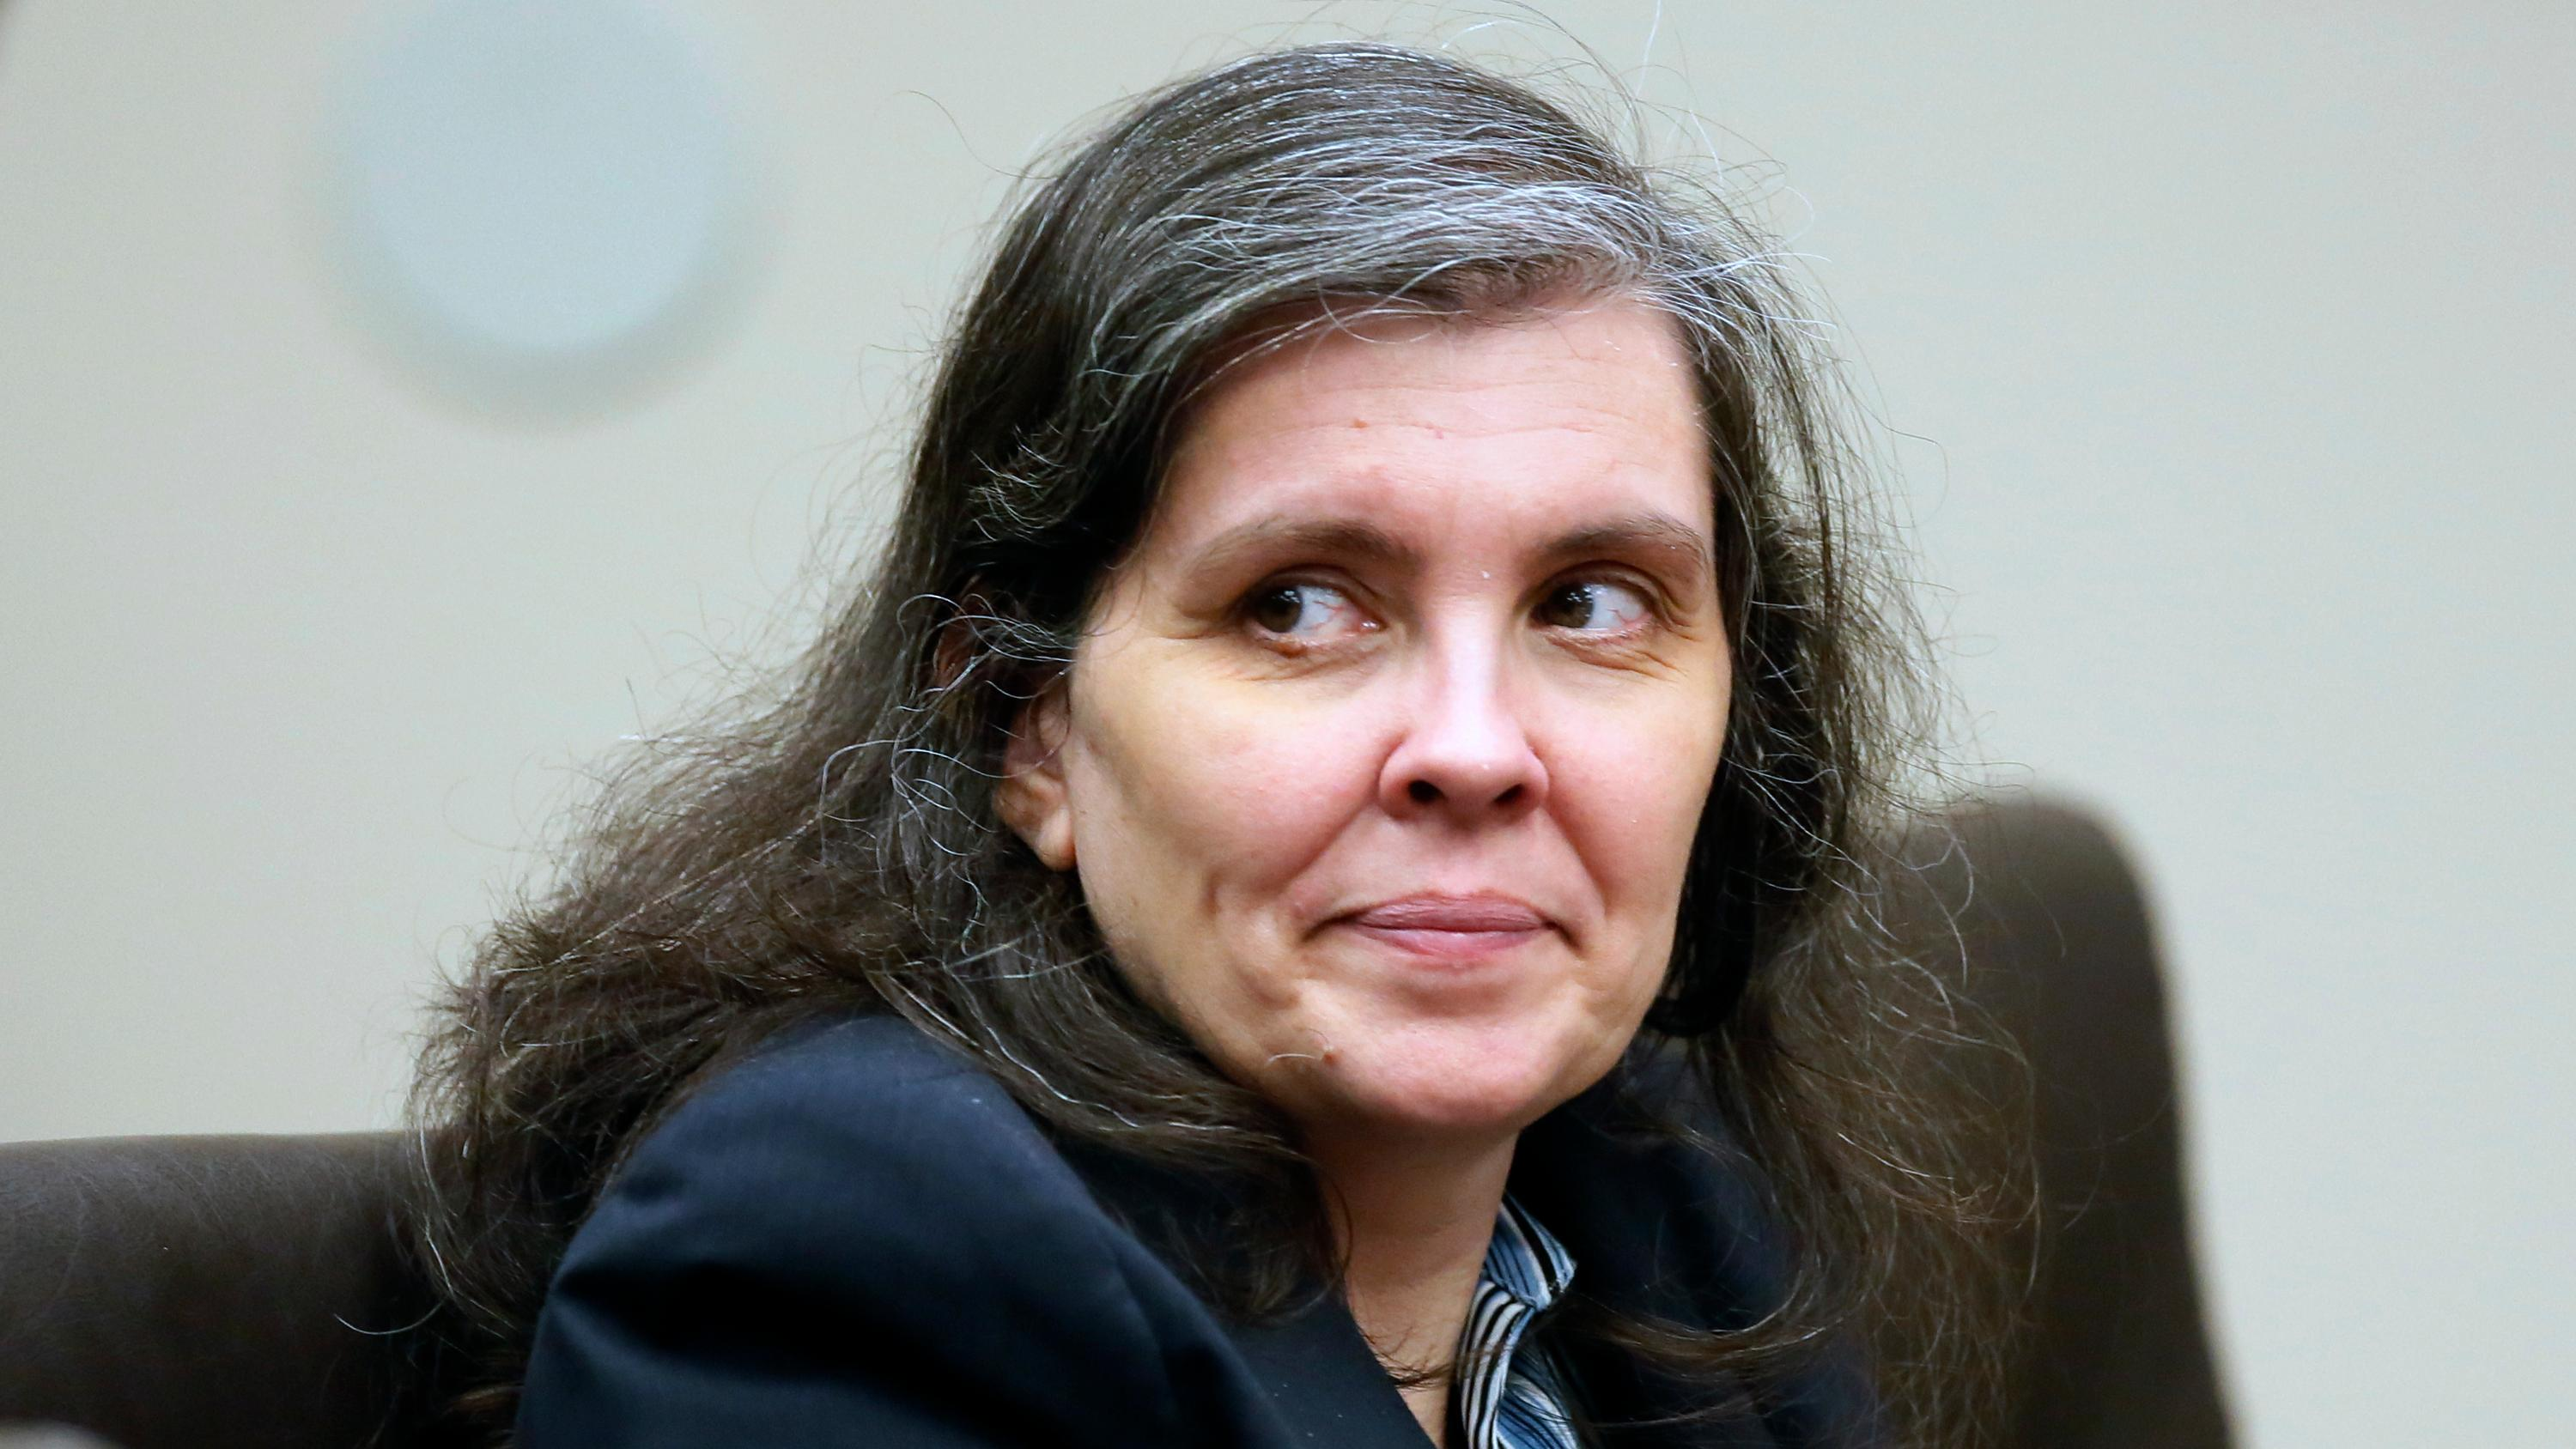 Elaine Chase Faces Four Misconduct Charges